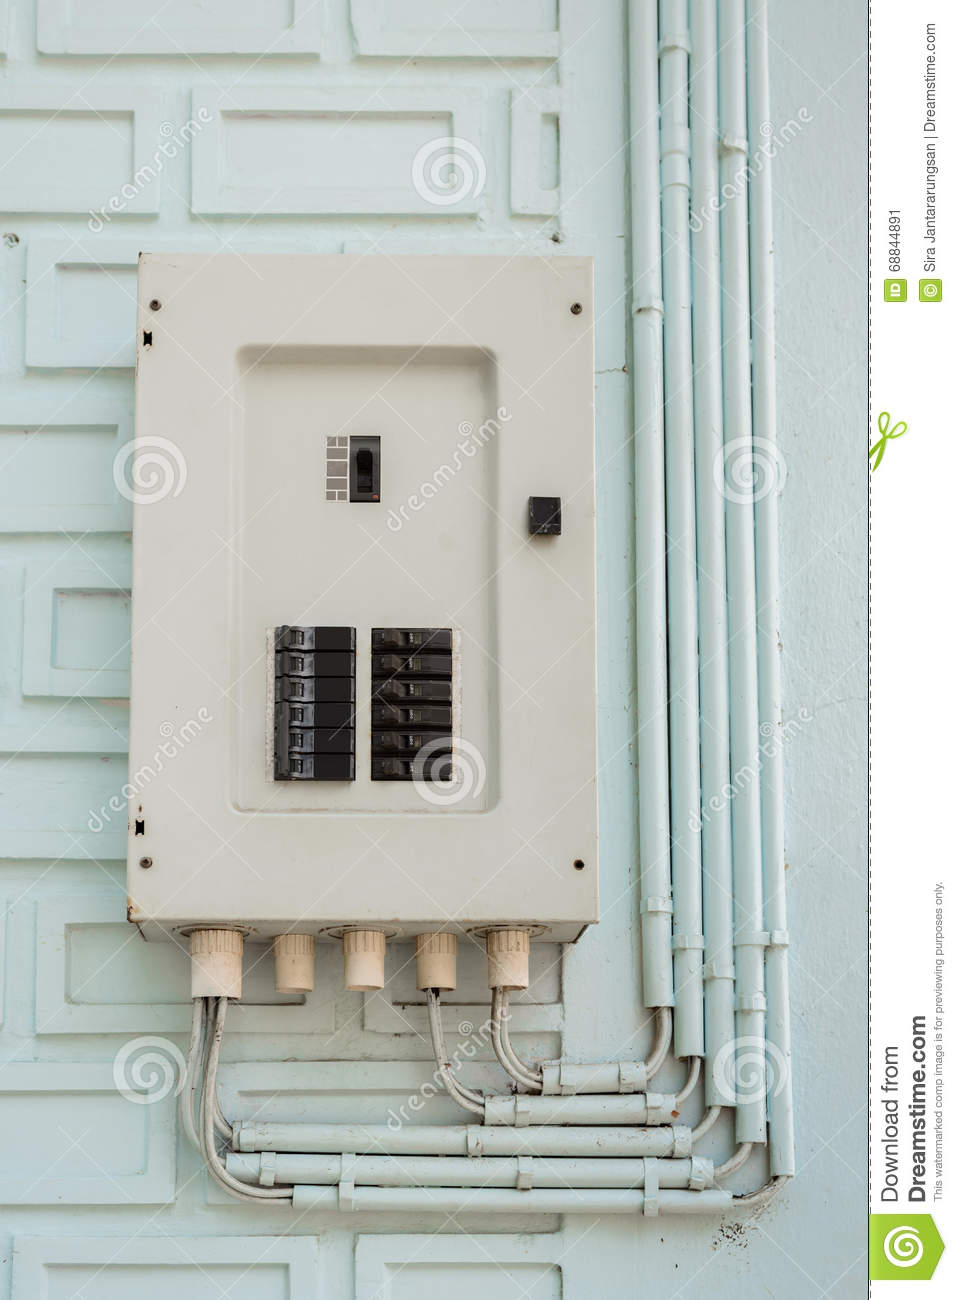 electric panel  fuse box and power pipe line stock photo